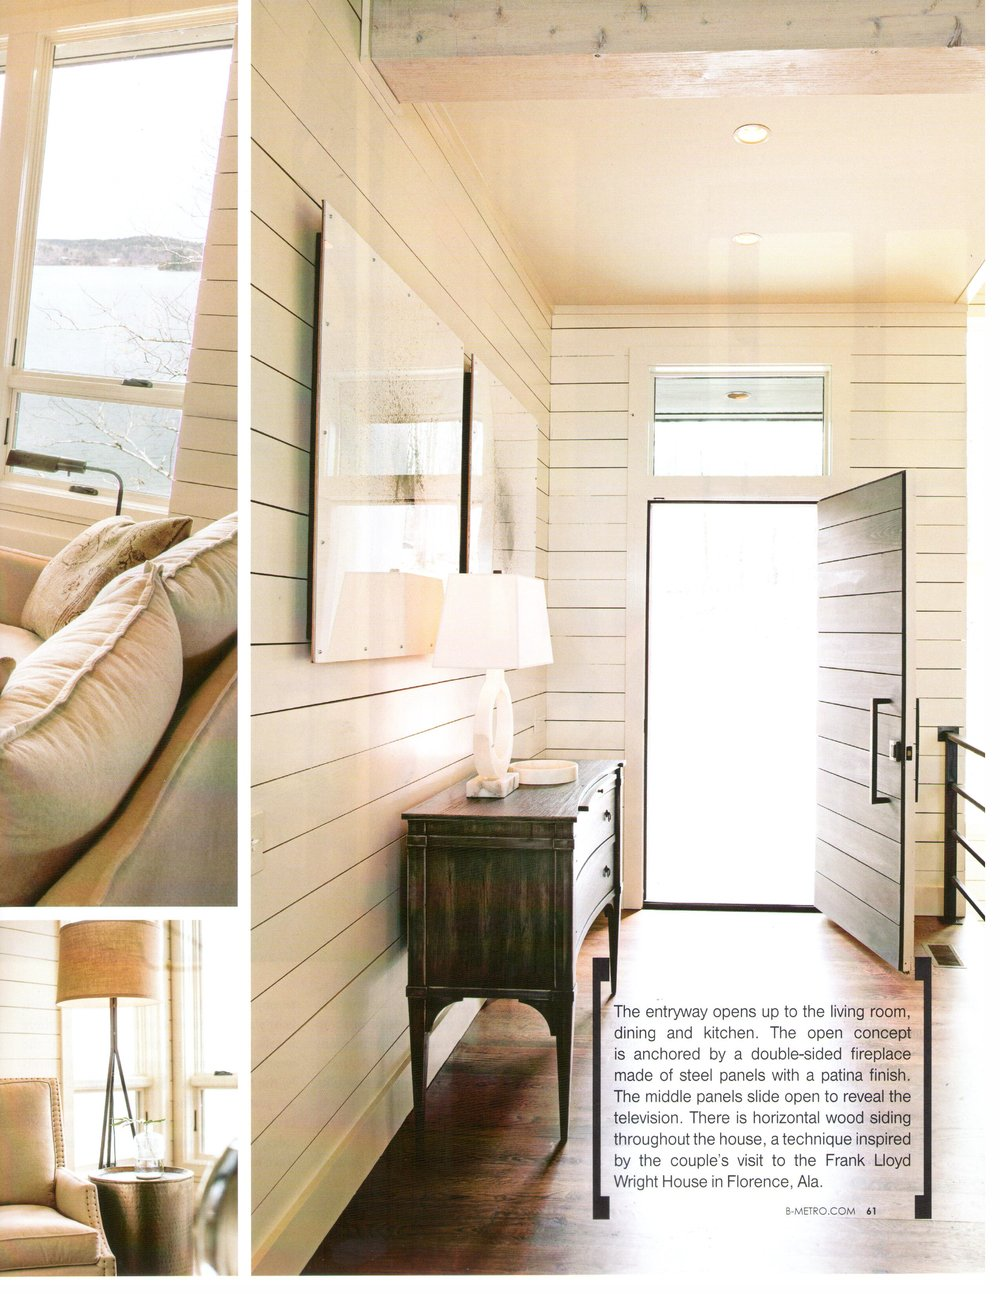 B-metro Magazine 2013 page 6 lake living architecture exterior and interior design Alabama